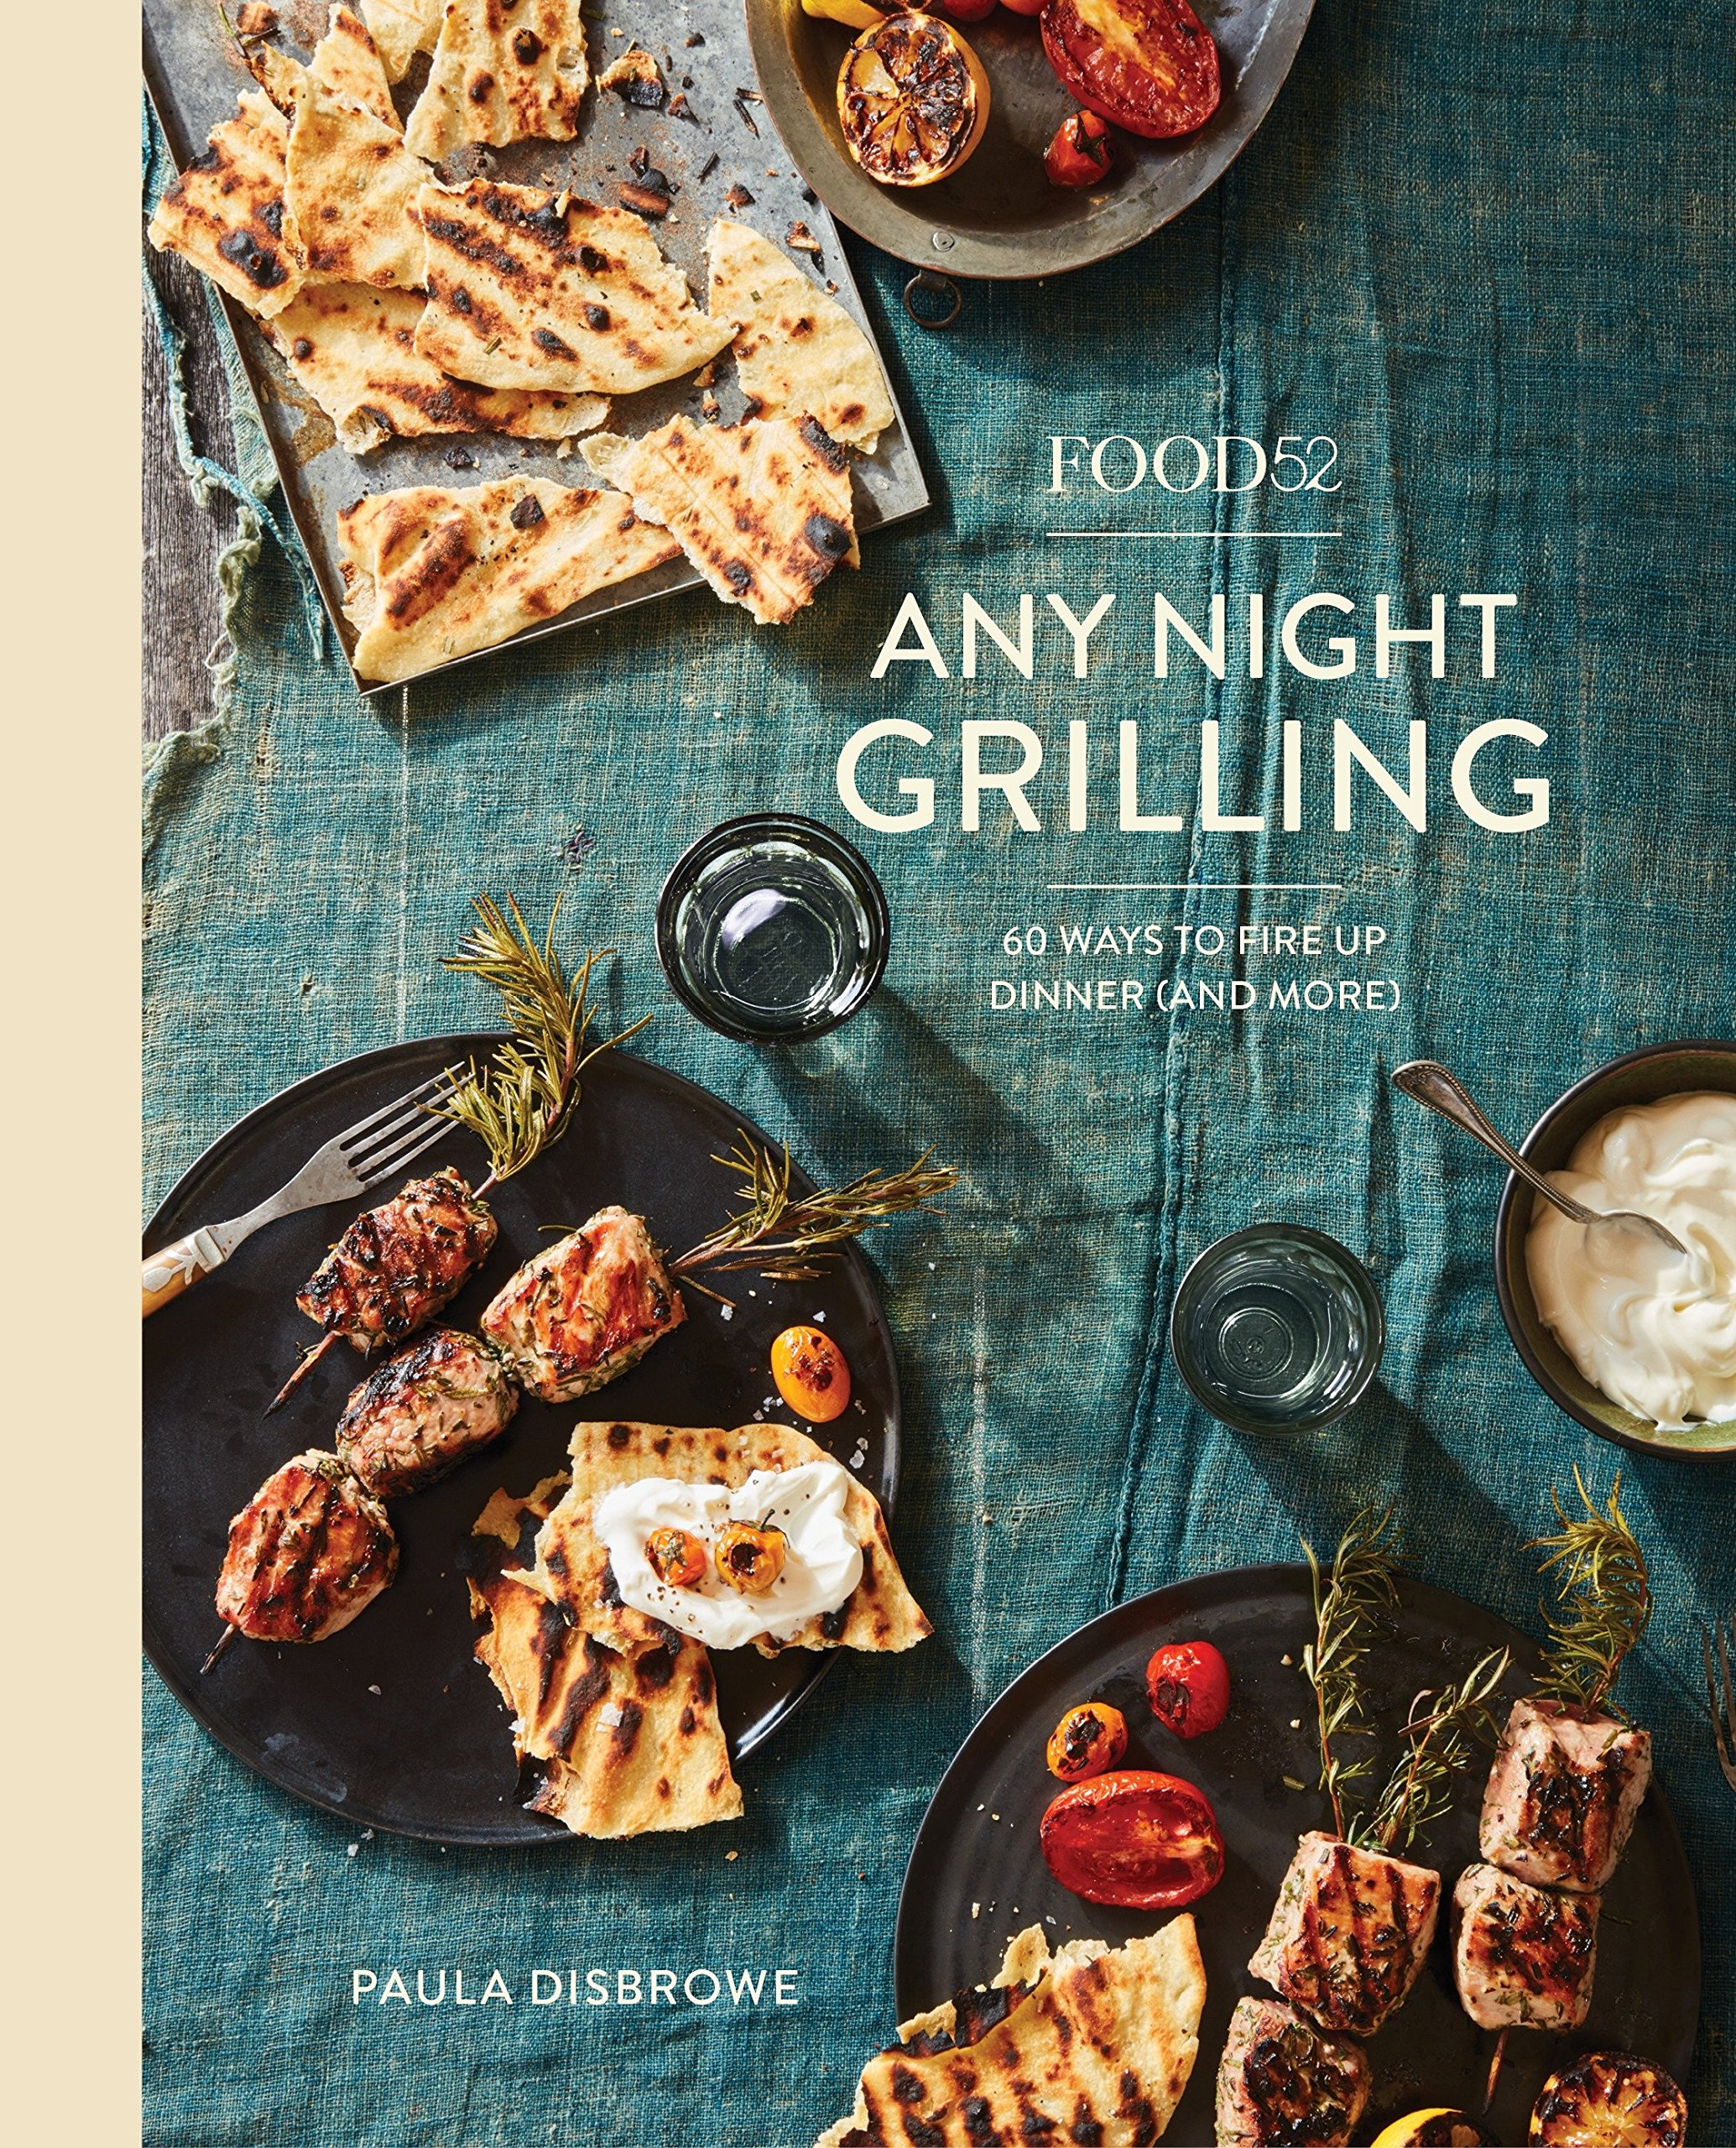 Food52 Any Night Grilling: 60 Ways to Fire Up Dinner (and